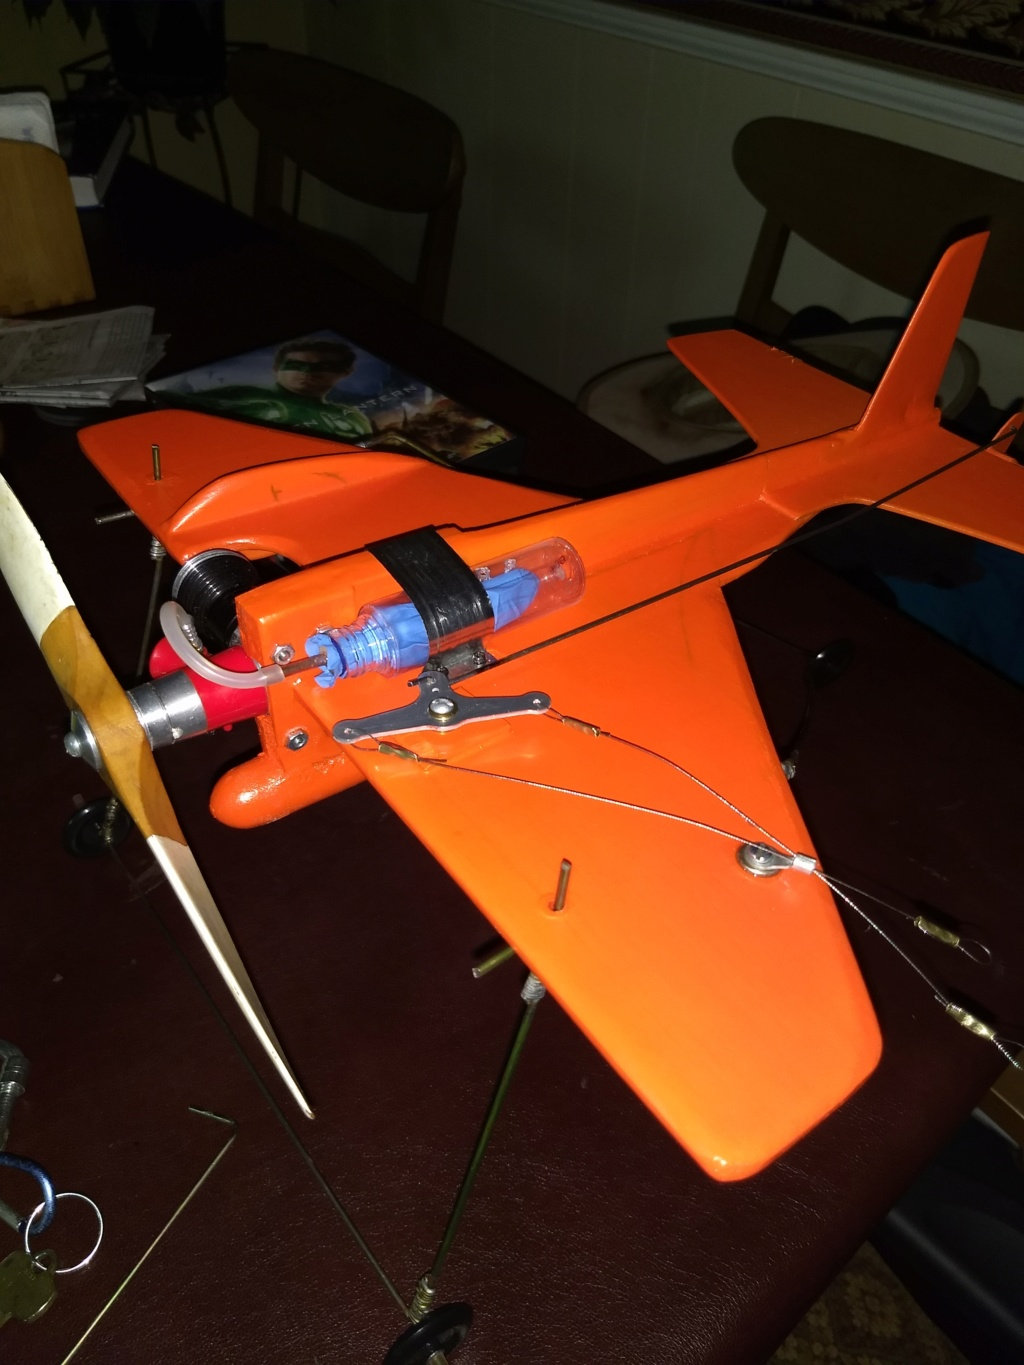 2019 CEF Run What YA Brung UNLIMITED speed contest Build Log by 944_Jim - Page 3 Img_2154